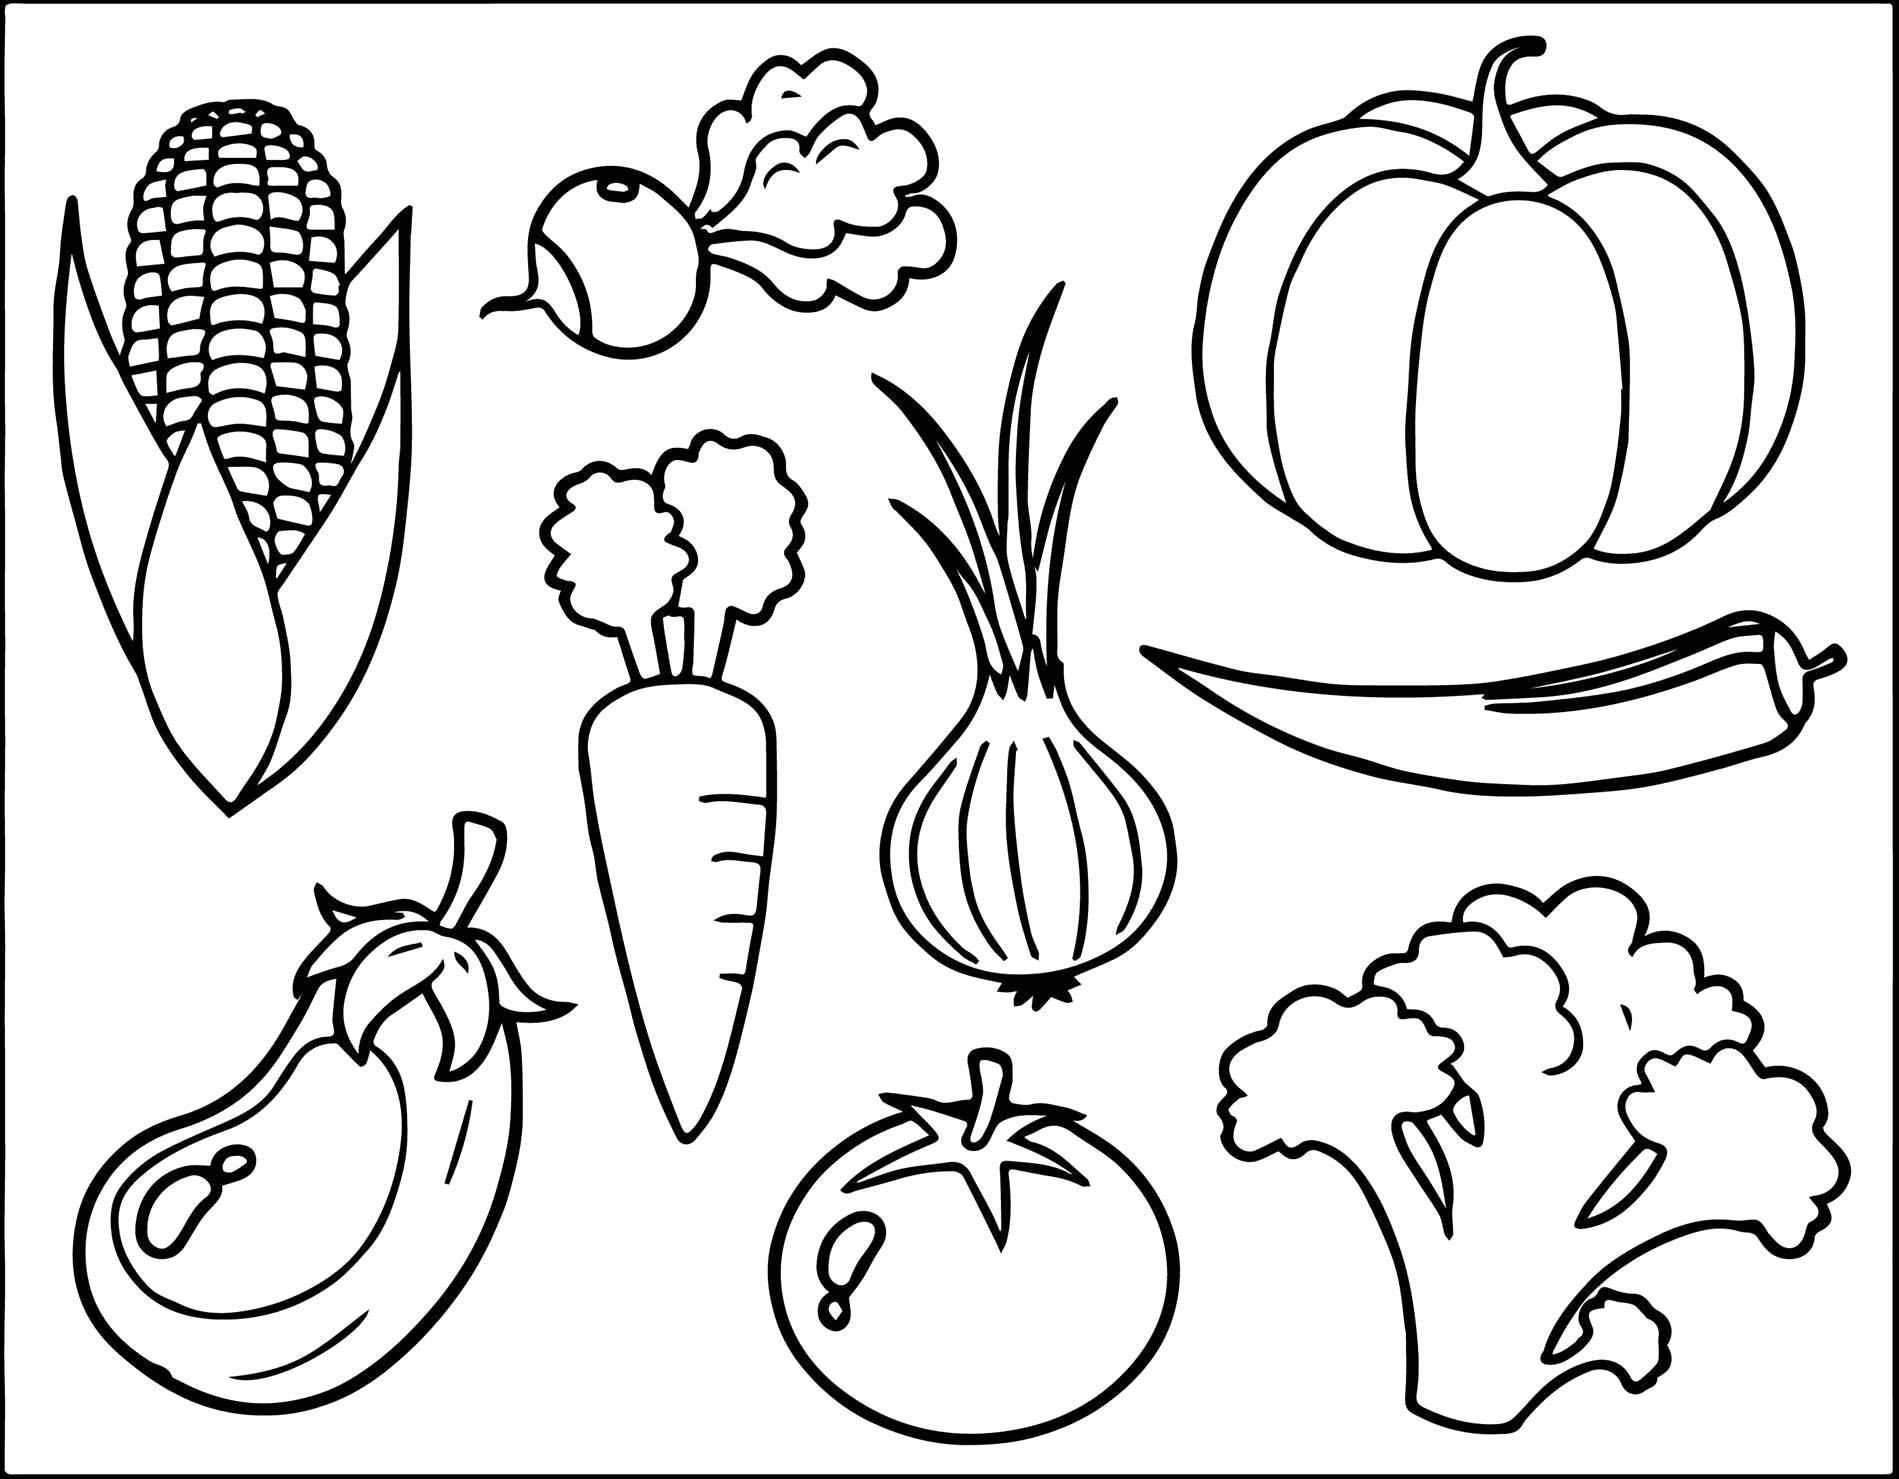 Preschool Fruits and Vegetables Worksheets Fruits and Ve Able Coloring Books Pdf for Kids with